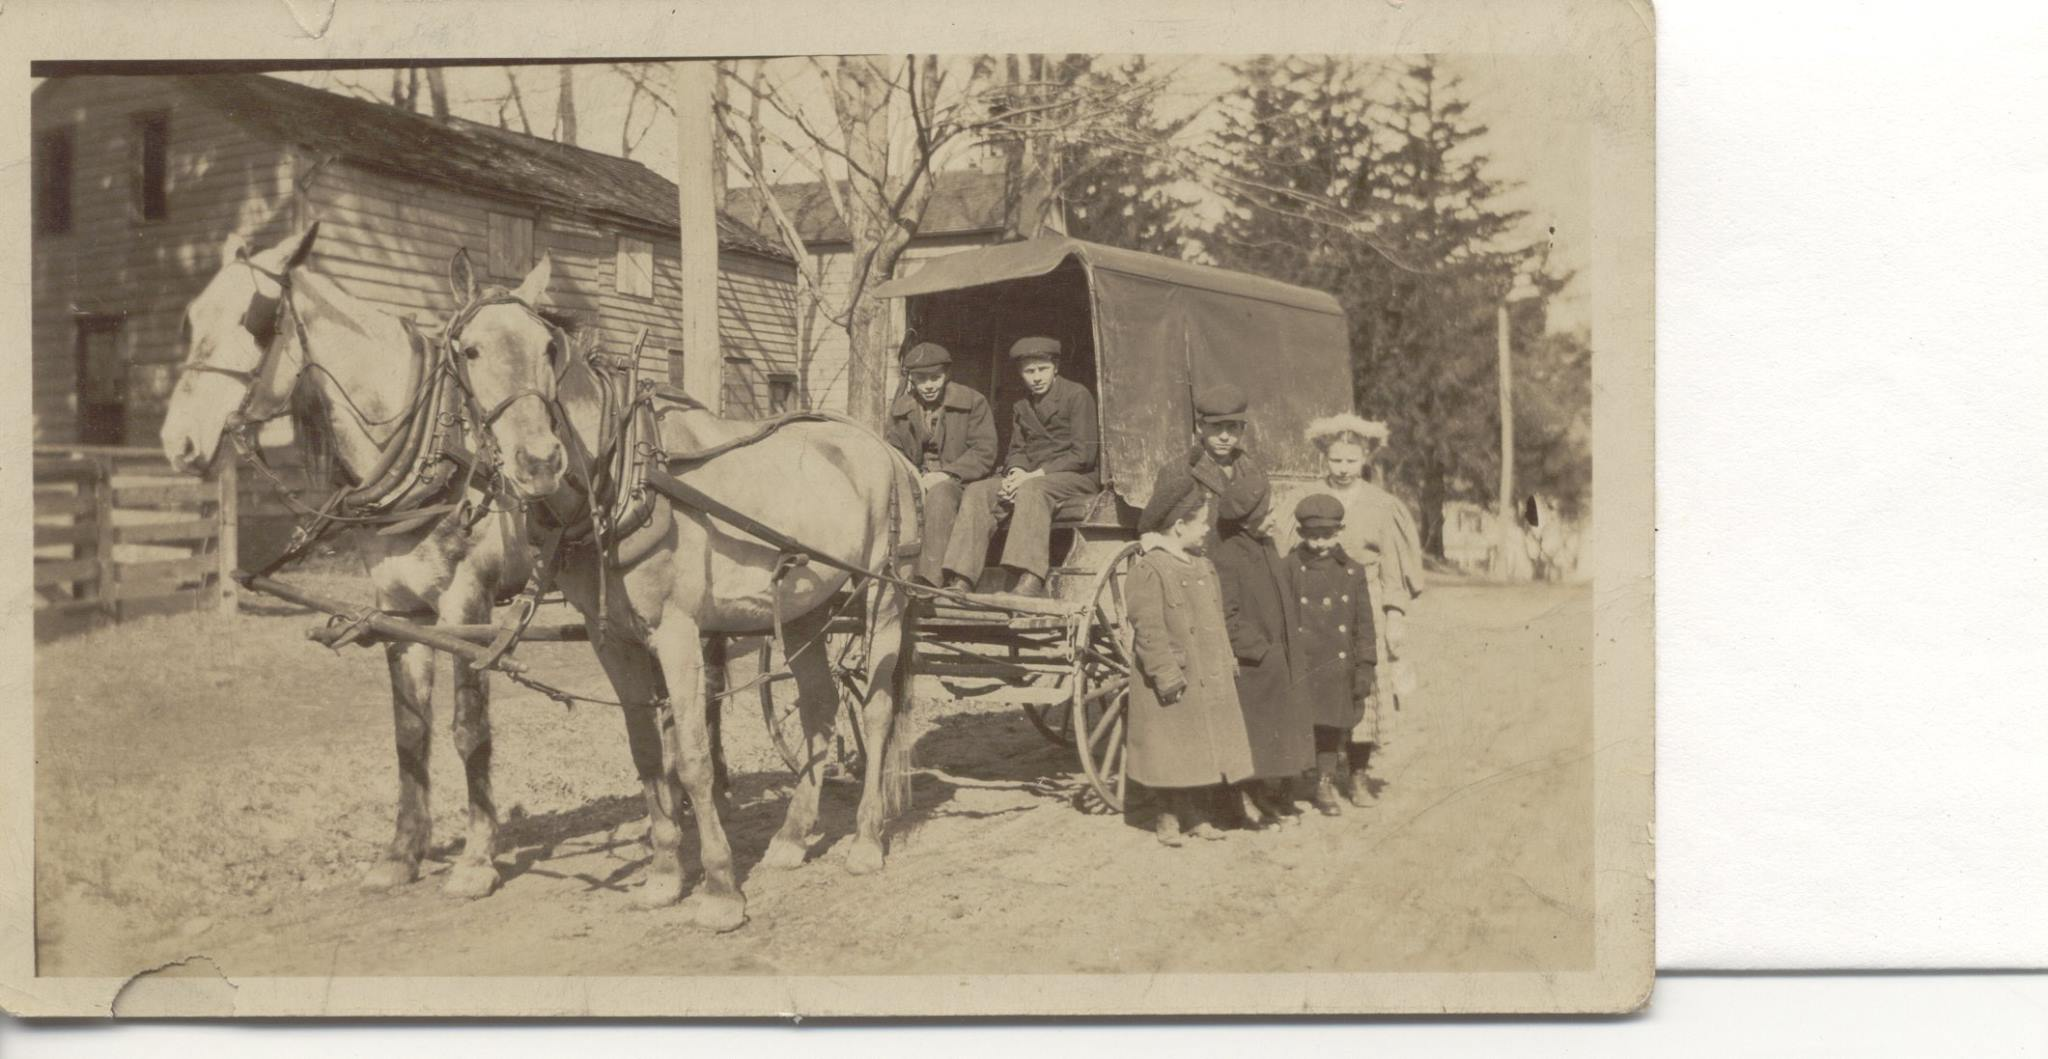 Bus to Amenia Union school 1910